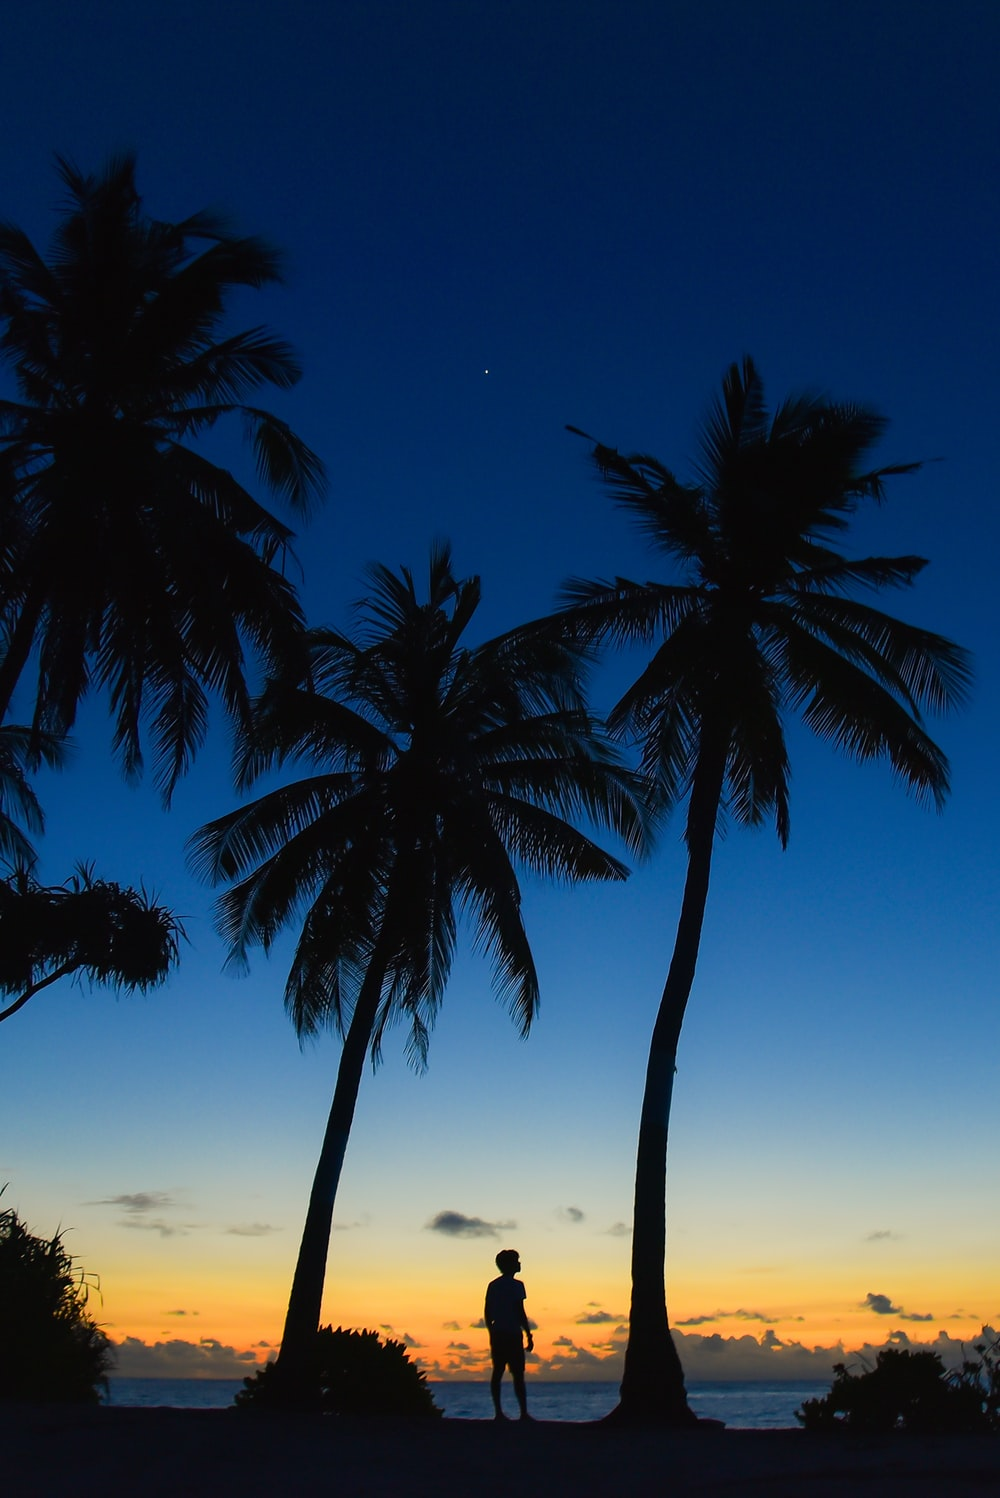 silhouette of person standing underneath palm tree